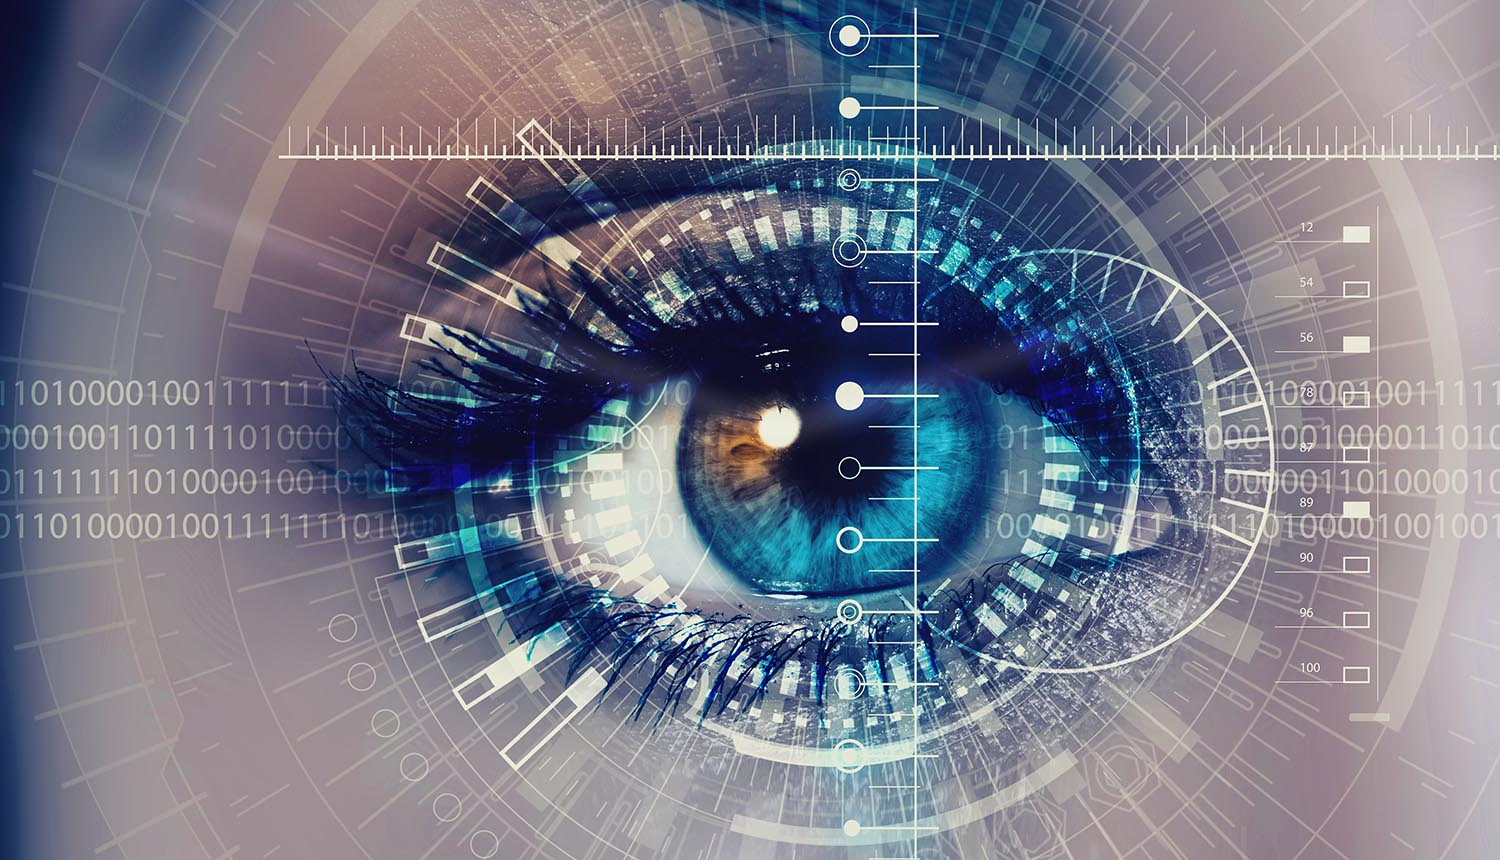 biometric-identification-knowing-who-and-where-you-are_1500